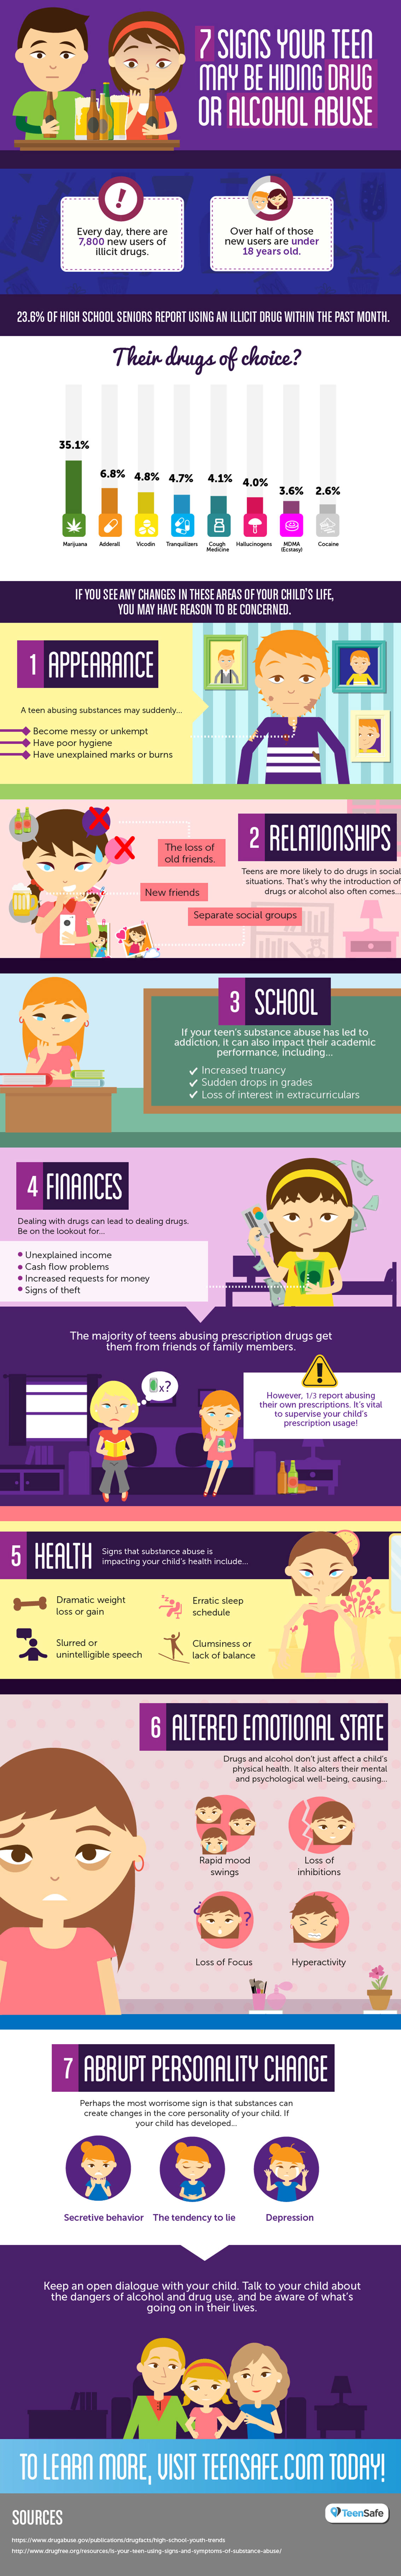 Signs your Teen is Hiding Alcohol and Drug Abuse - Parenting Infographic